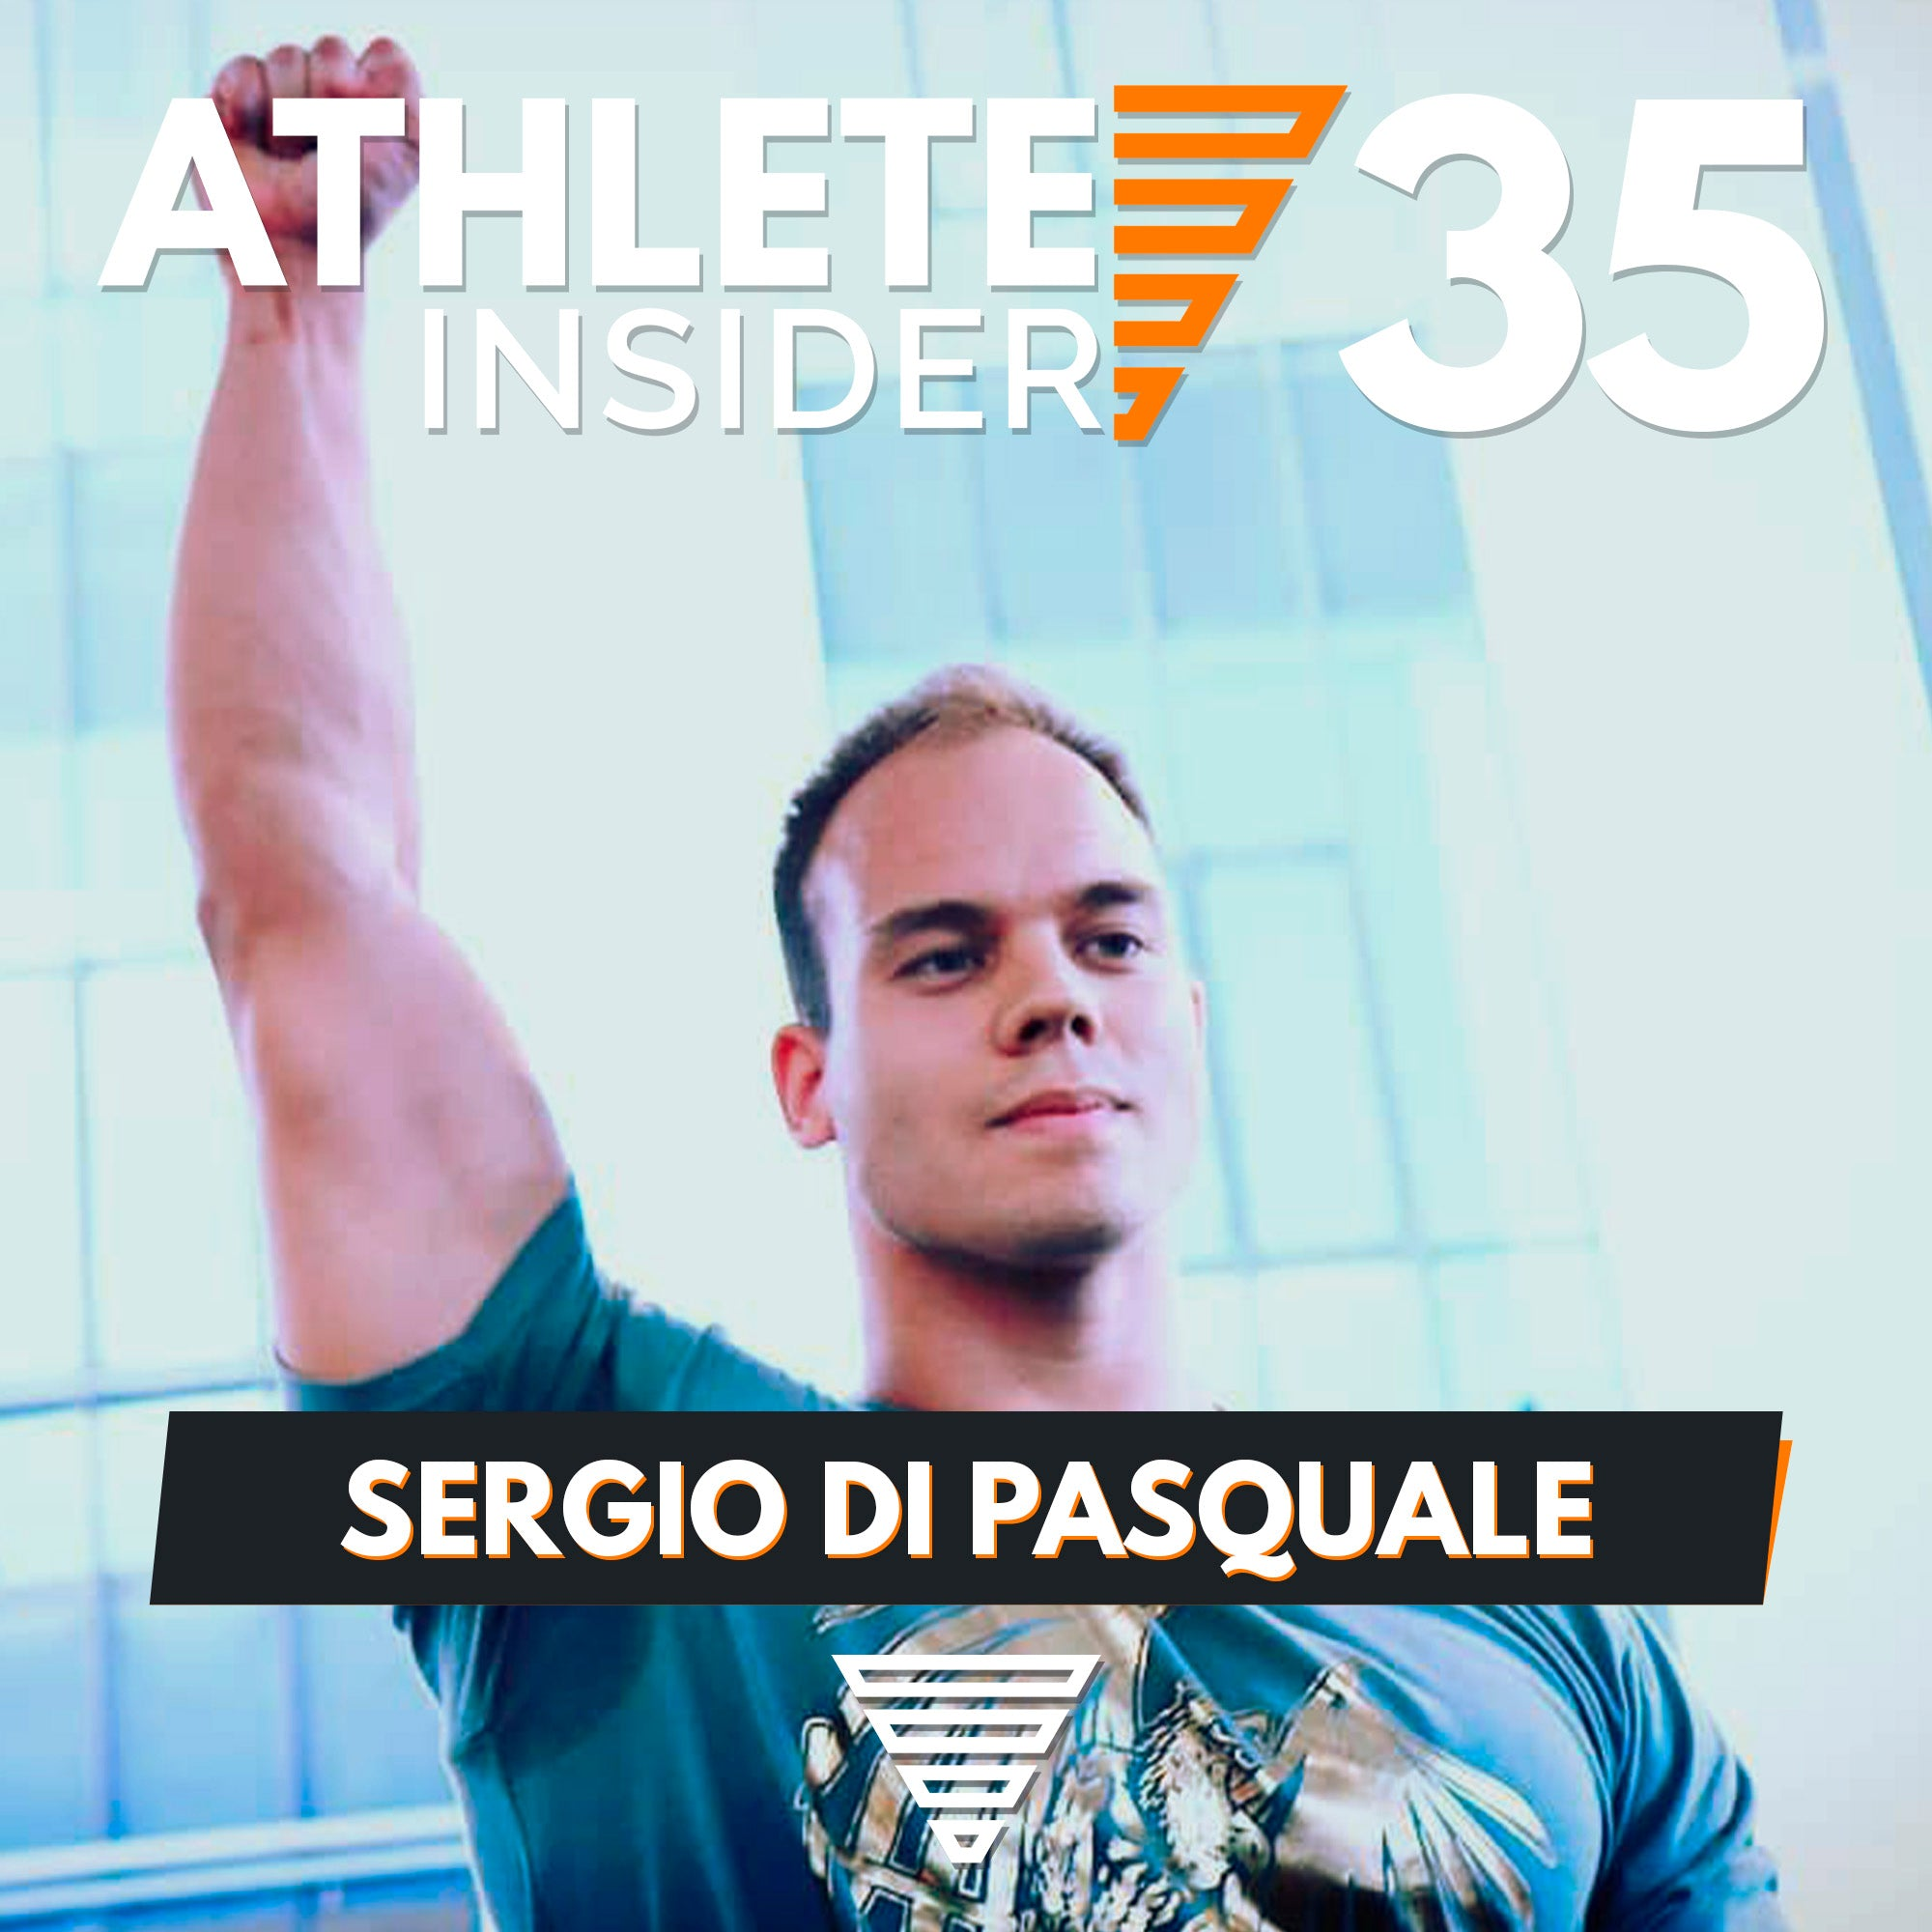 SERGIO DI PASQUALE | Get to know the Endurance Beast  | Interview | The Athlete Insider Podcast #35